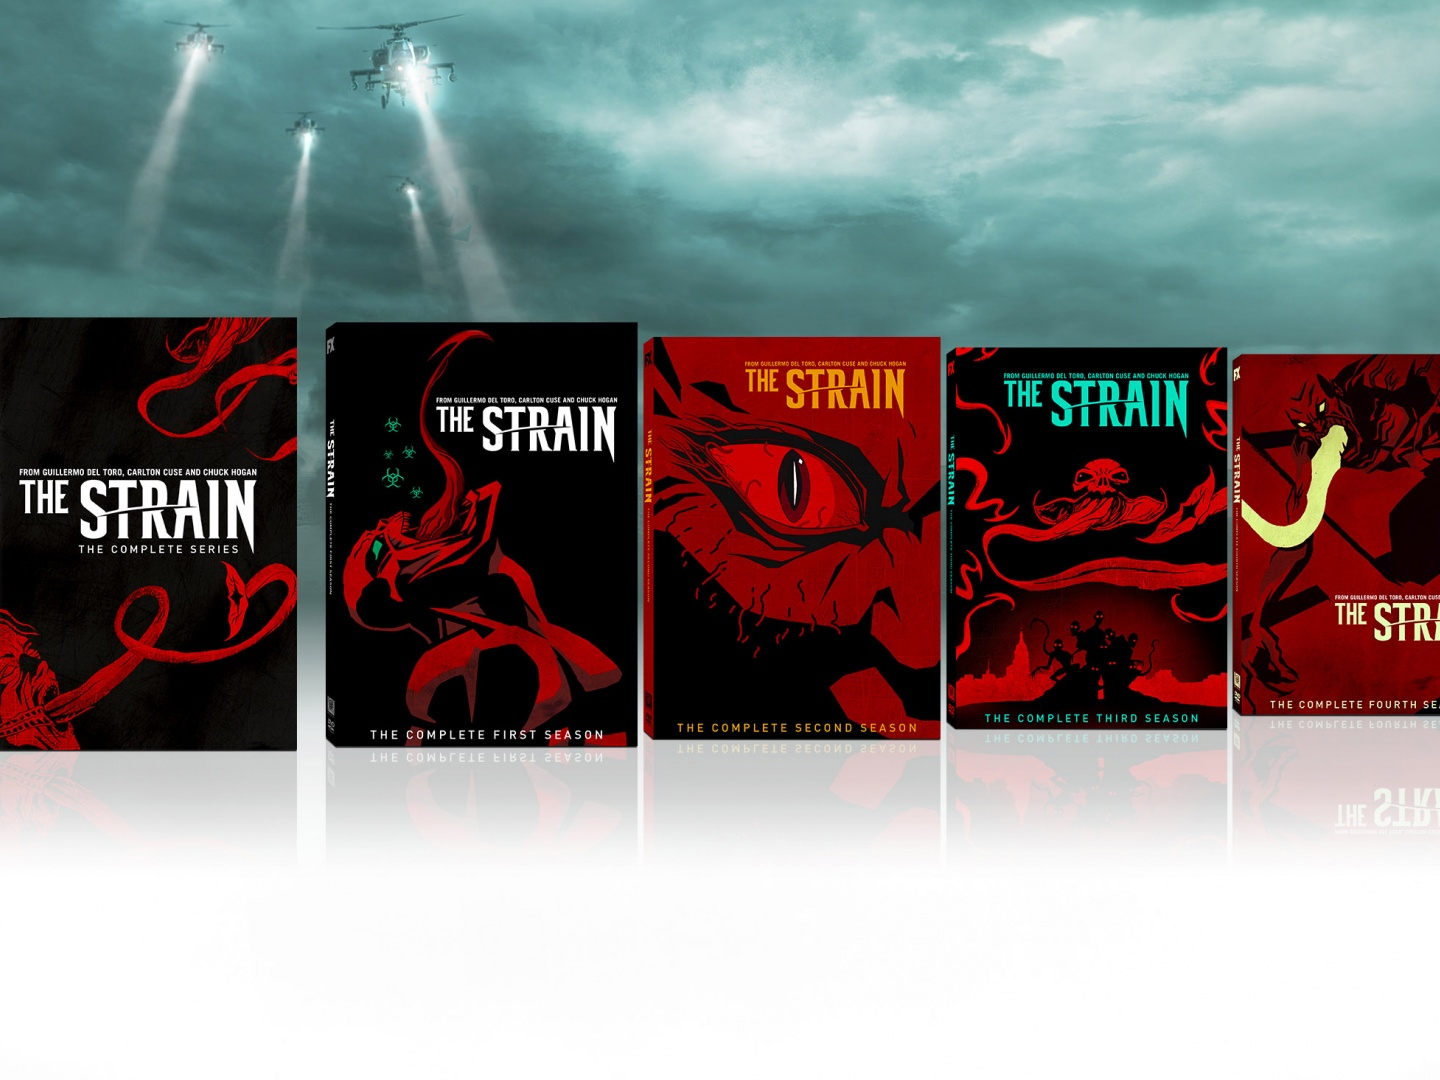 The Strain Seasons 1-4 and Complete Series Comic-Con Exclusives Thumbnail